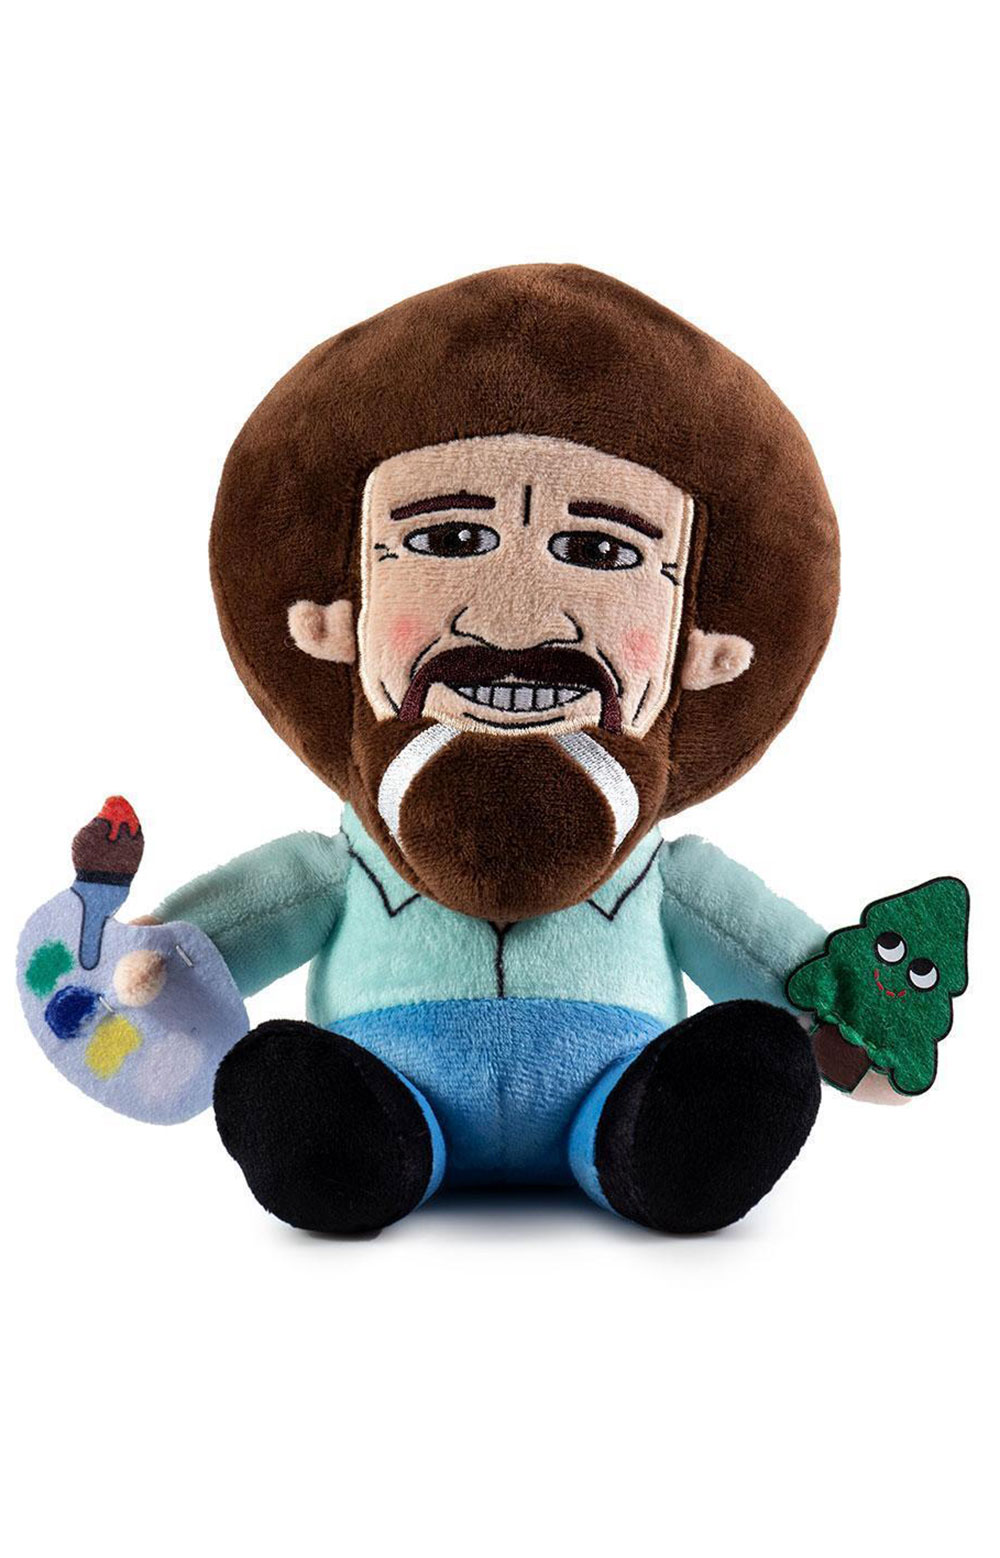 Bob Ross Phunny Plush Toy